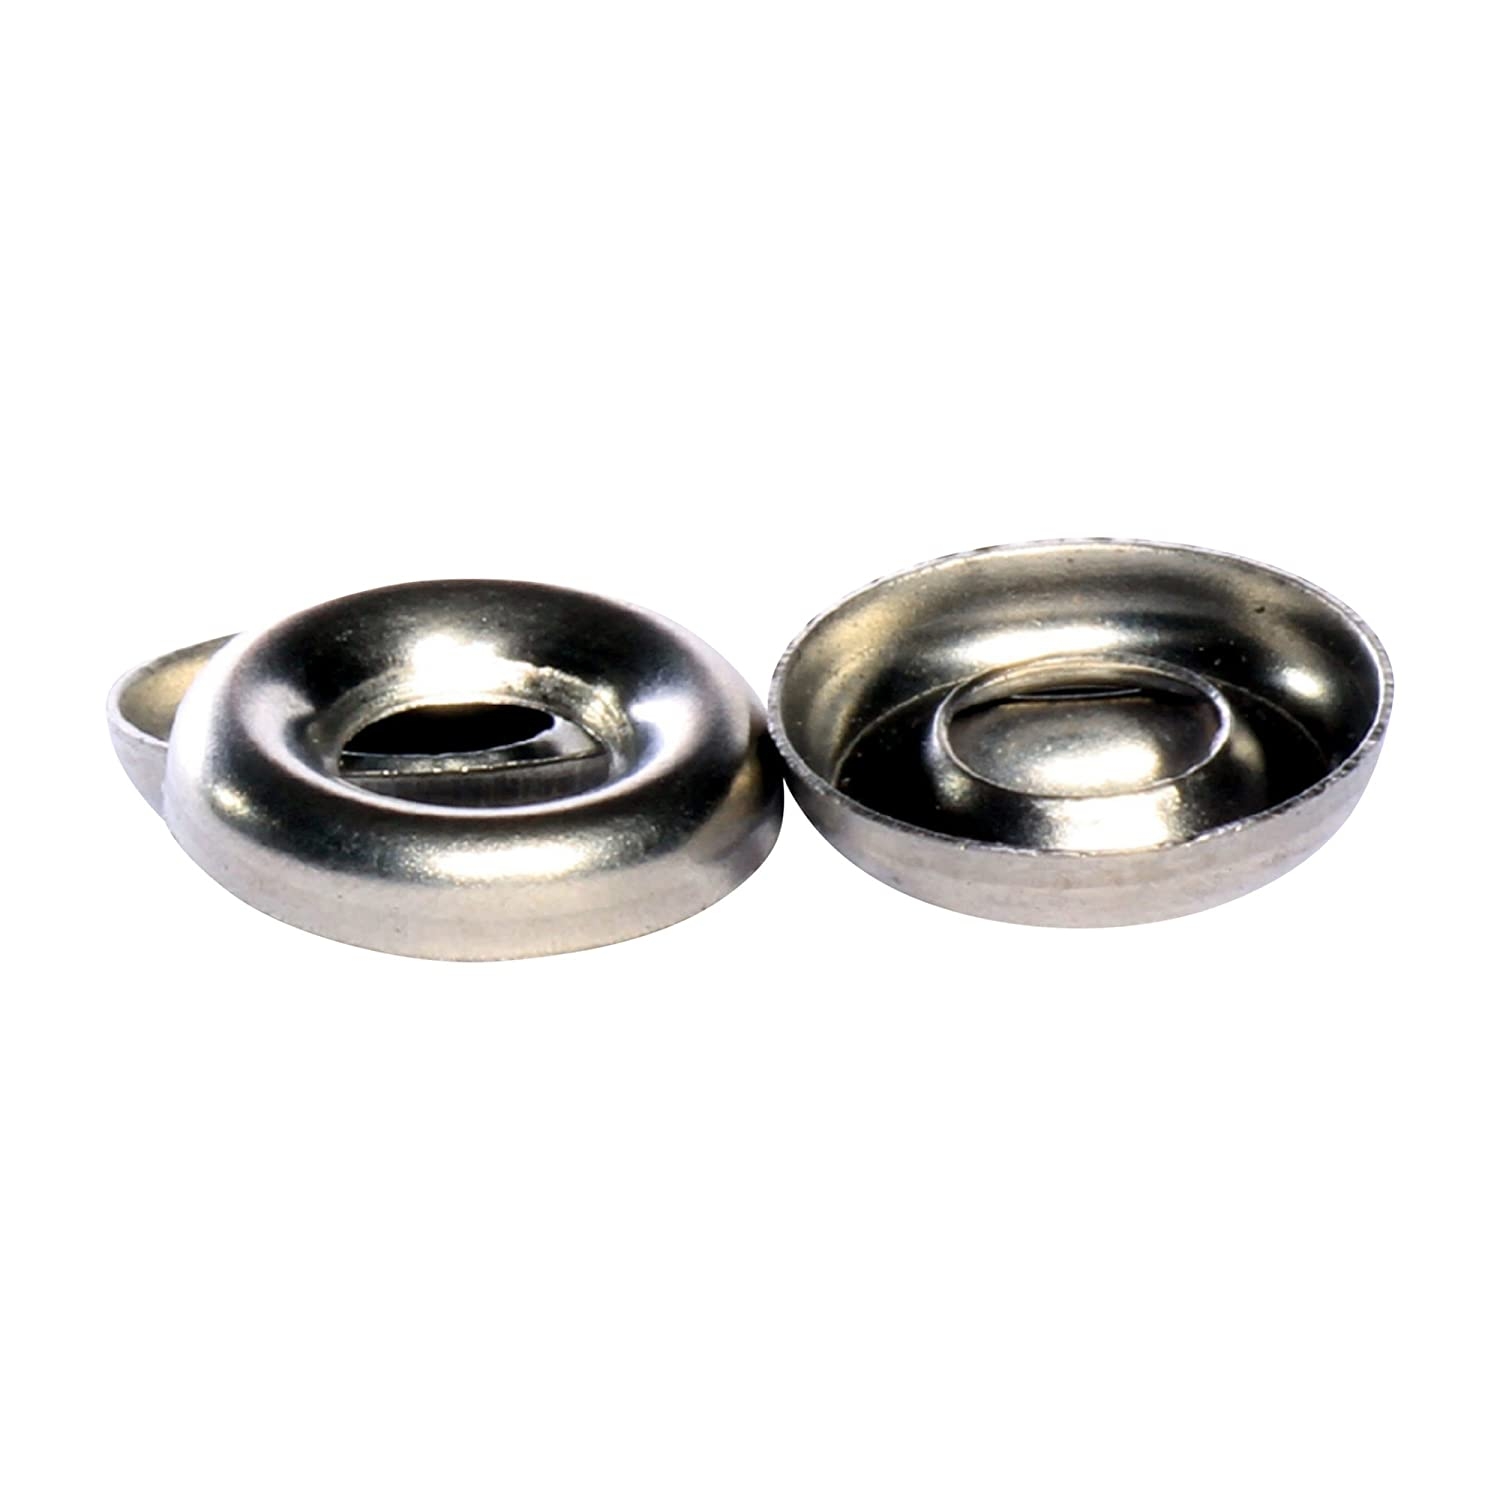 Bolt Base No 10 A2 Stainless Steel Cup Washers Countersunk screw Finishing Washer - 10 Pack